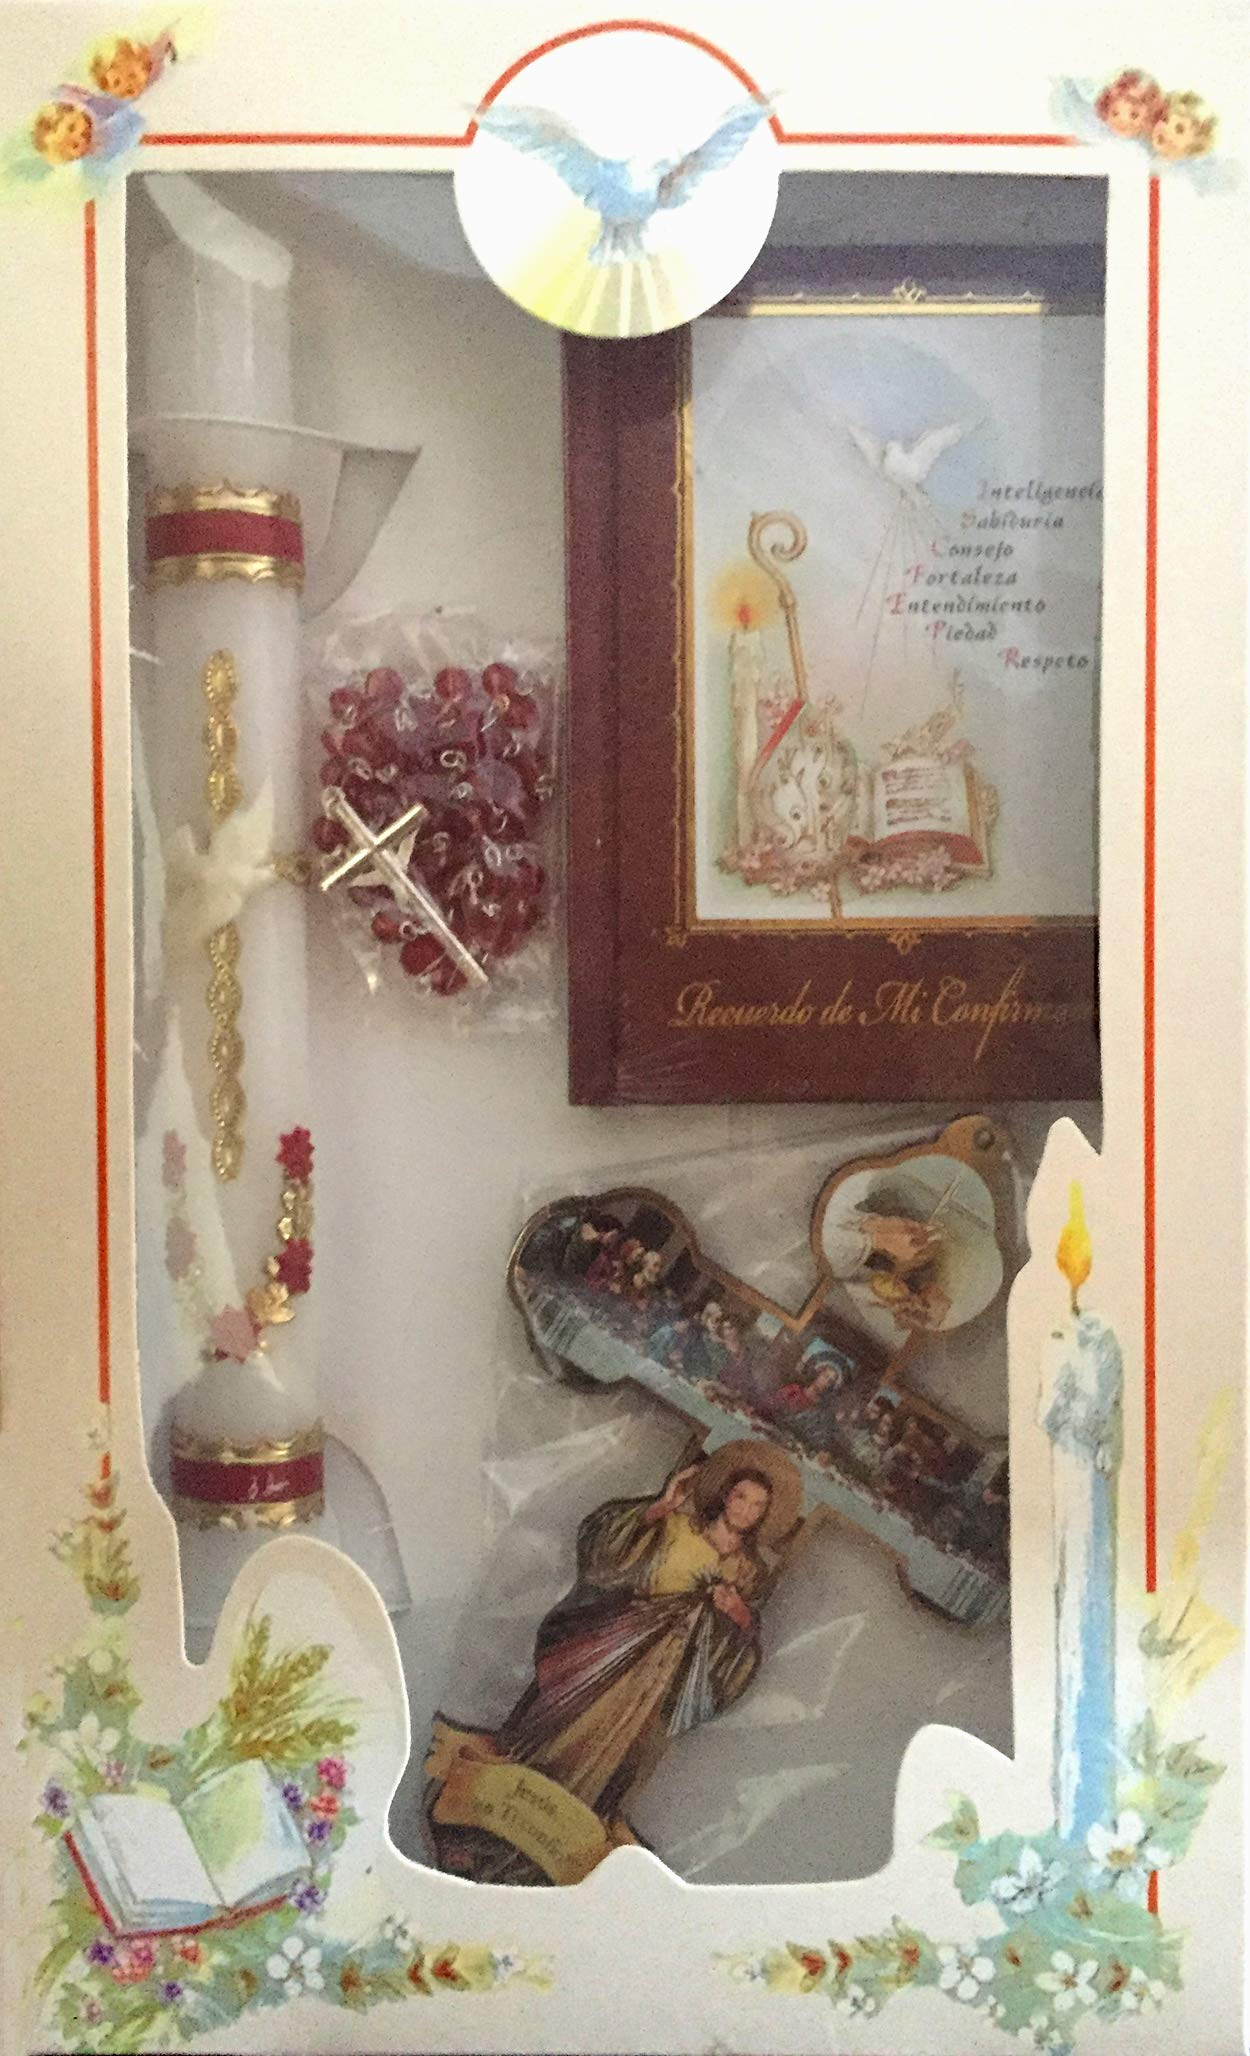 Boys Girls Confirmation Complete Candle Gift Set Keepsake Missal English Rosary Cross